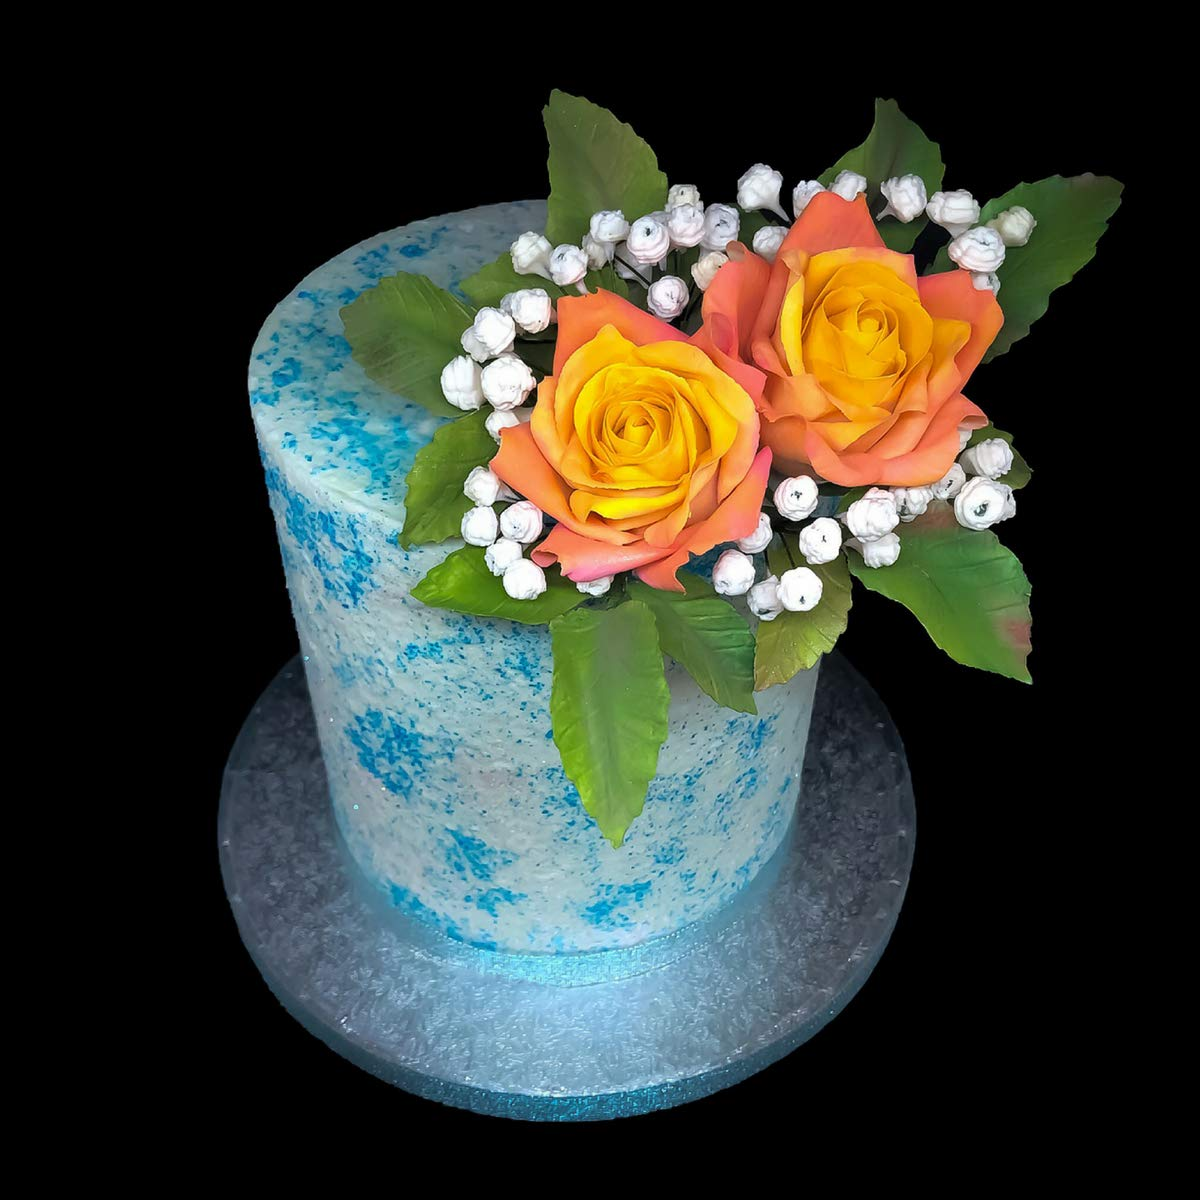 Cake Decorating Fondant Icing Silicone Mold - Sugarcraft Flower Pro Ultimate Filler Flowers from Katy Sue Designs